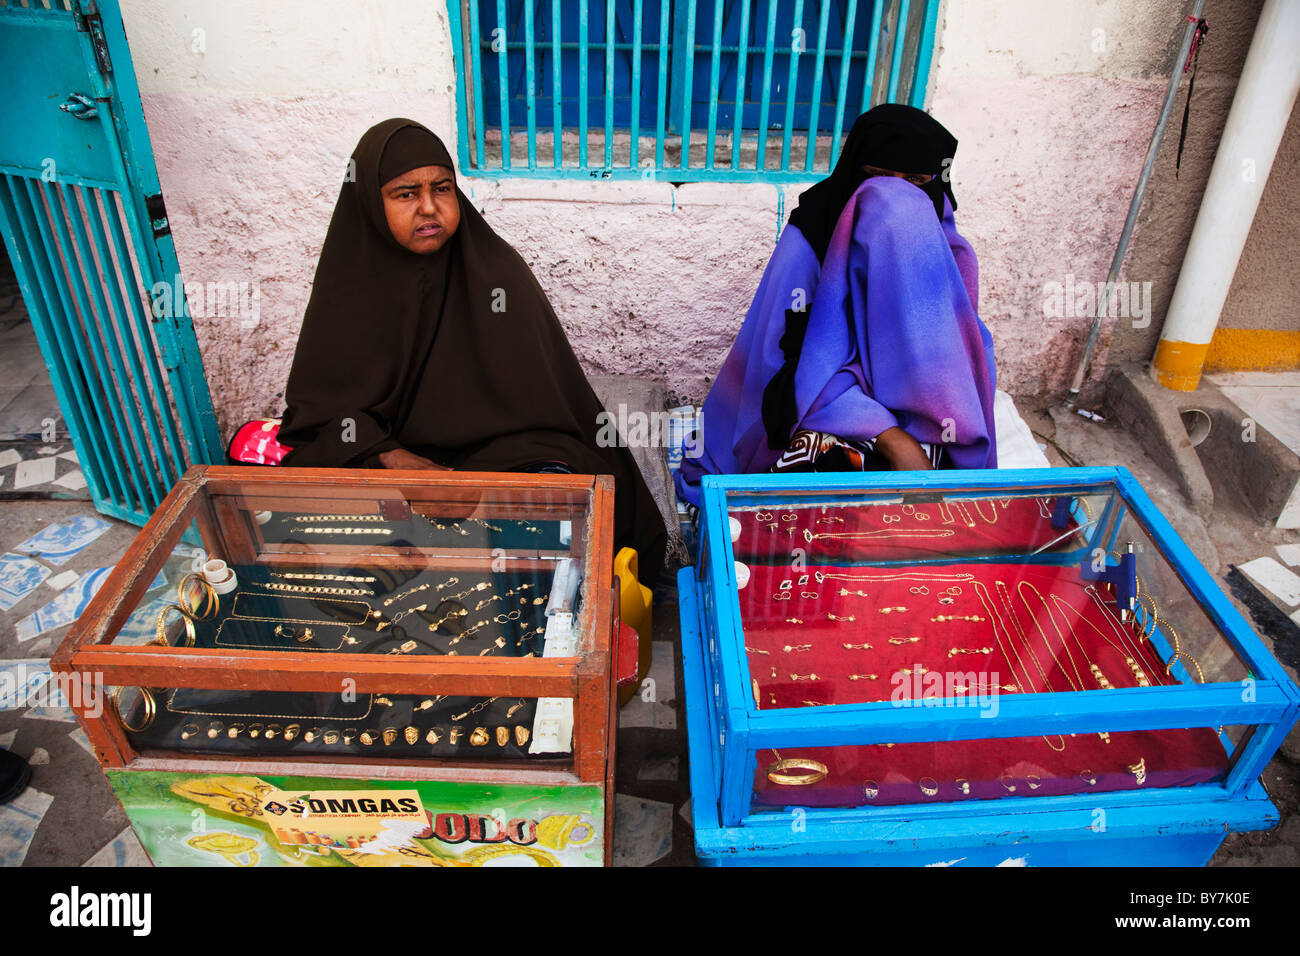 Women traders sell gold jewelery in Hargeysamarker, Somaliland, Somalia, Africa - Stock Image